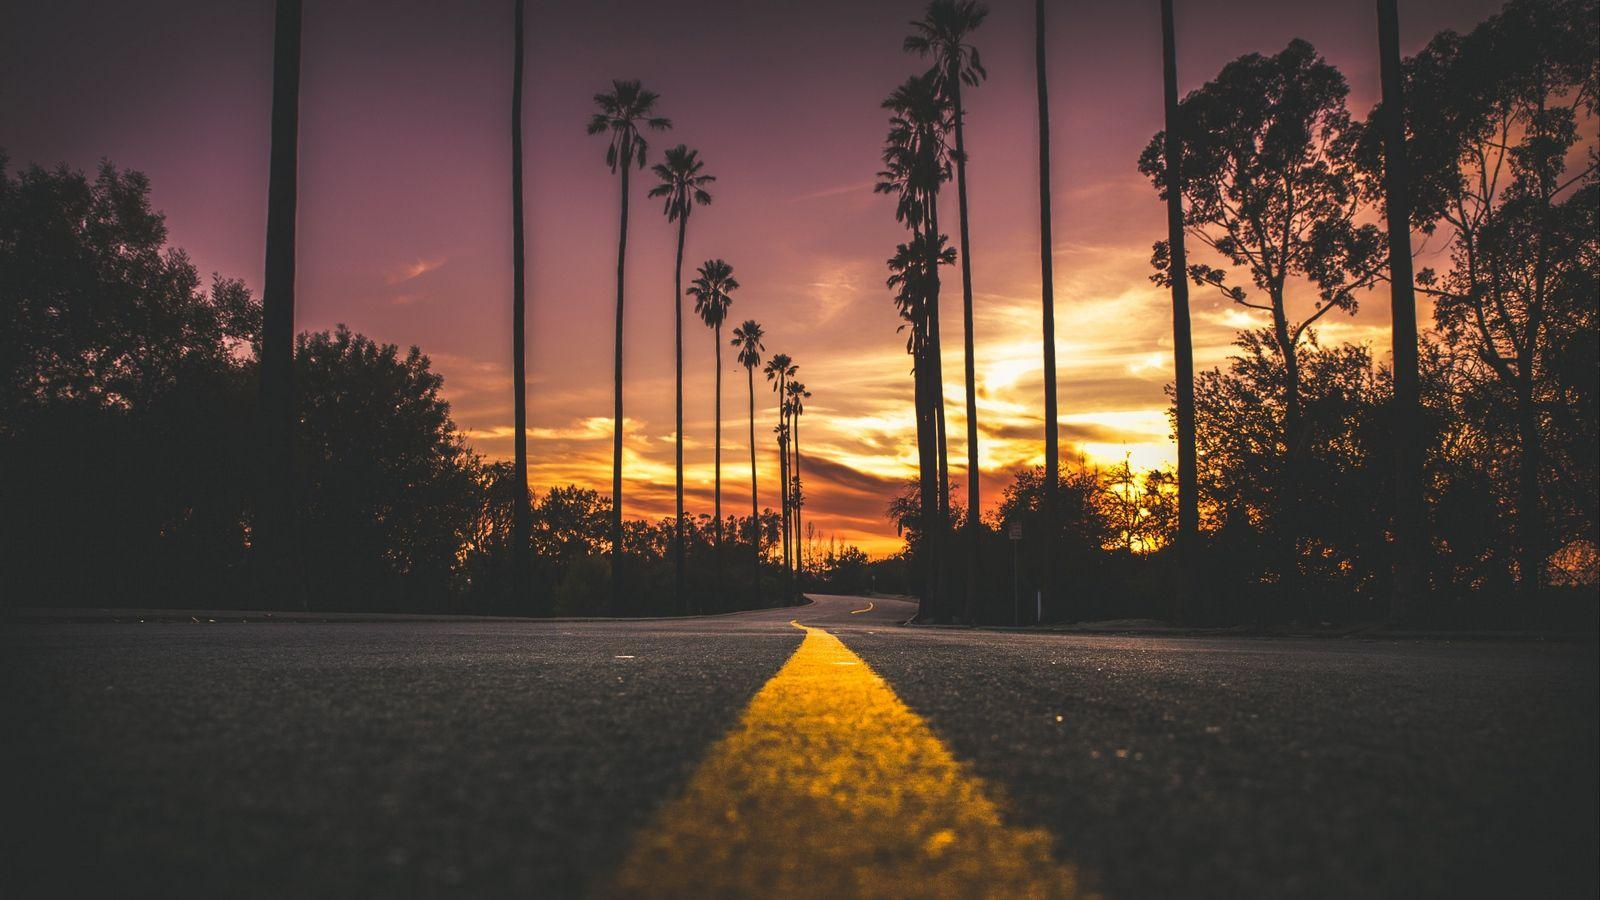 Download wallpapers 1600x900 palms, road, marking, trees, sky